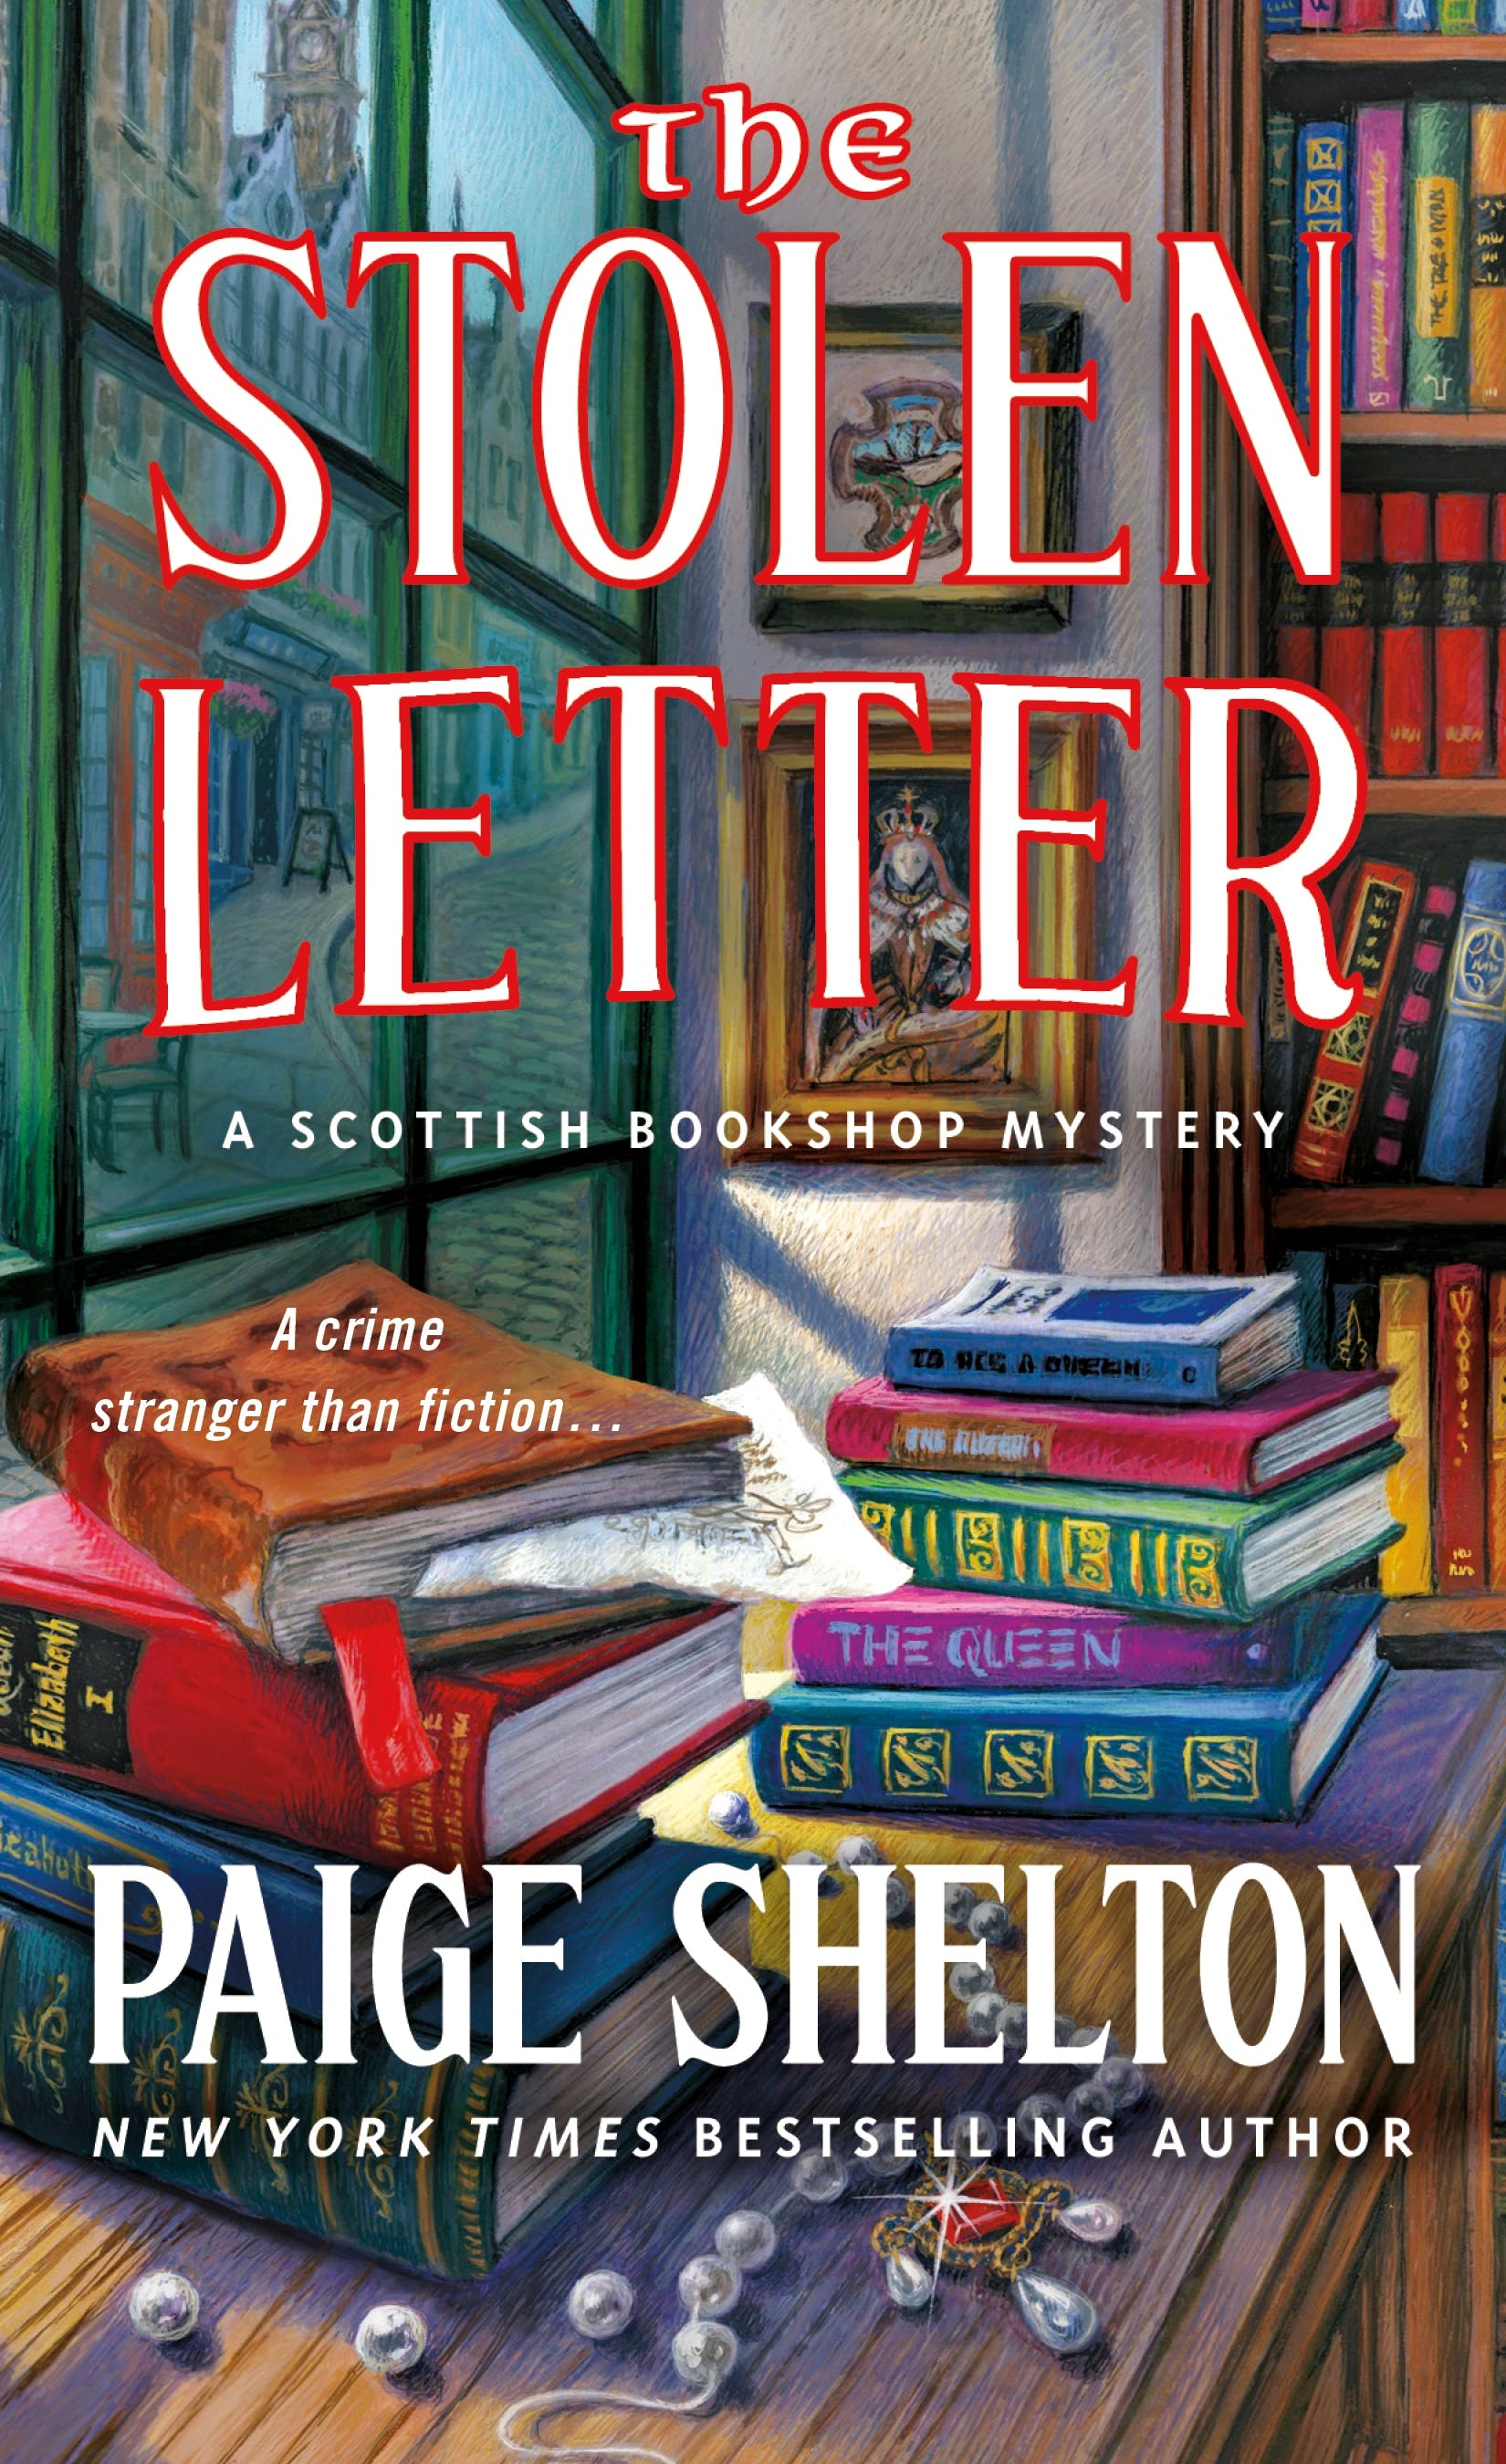 Image of The Stolen Letter